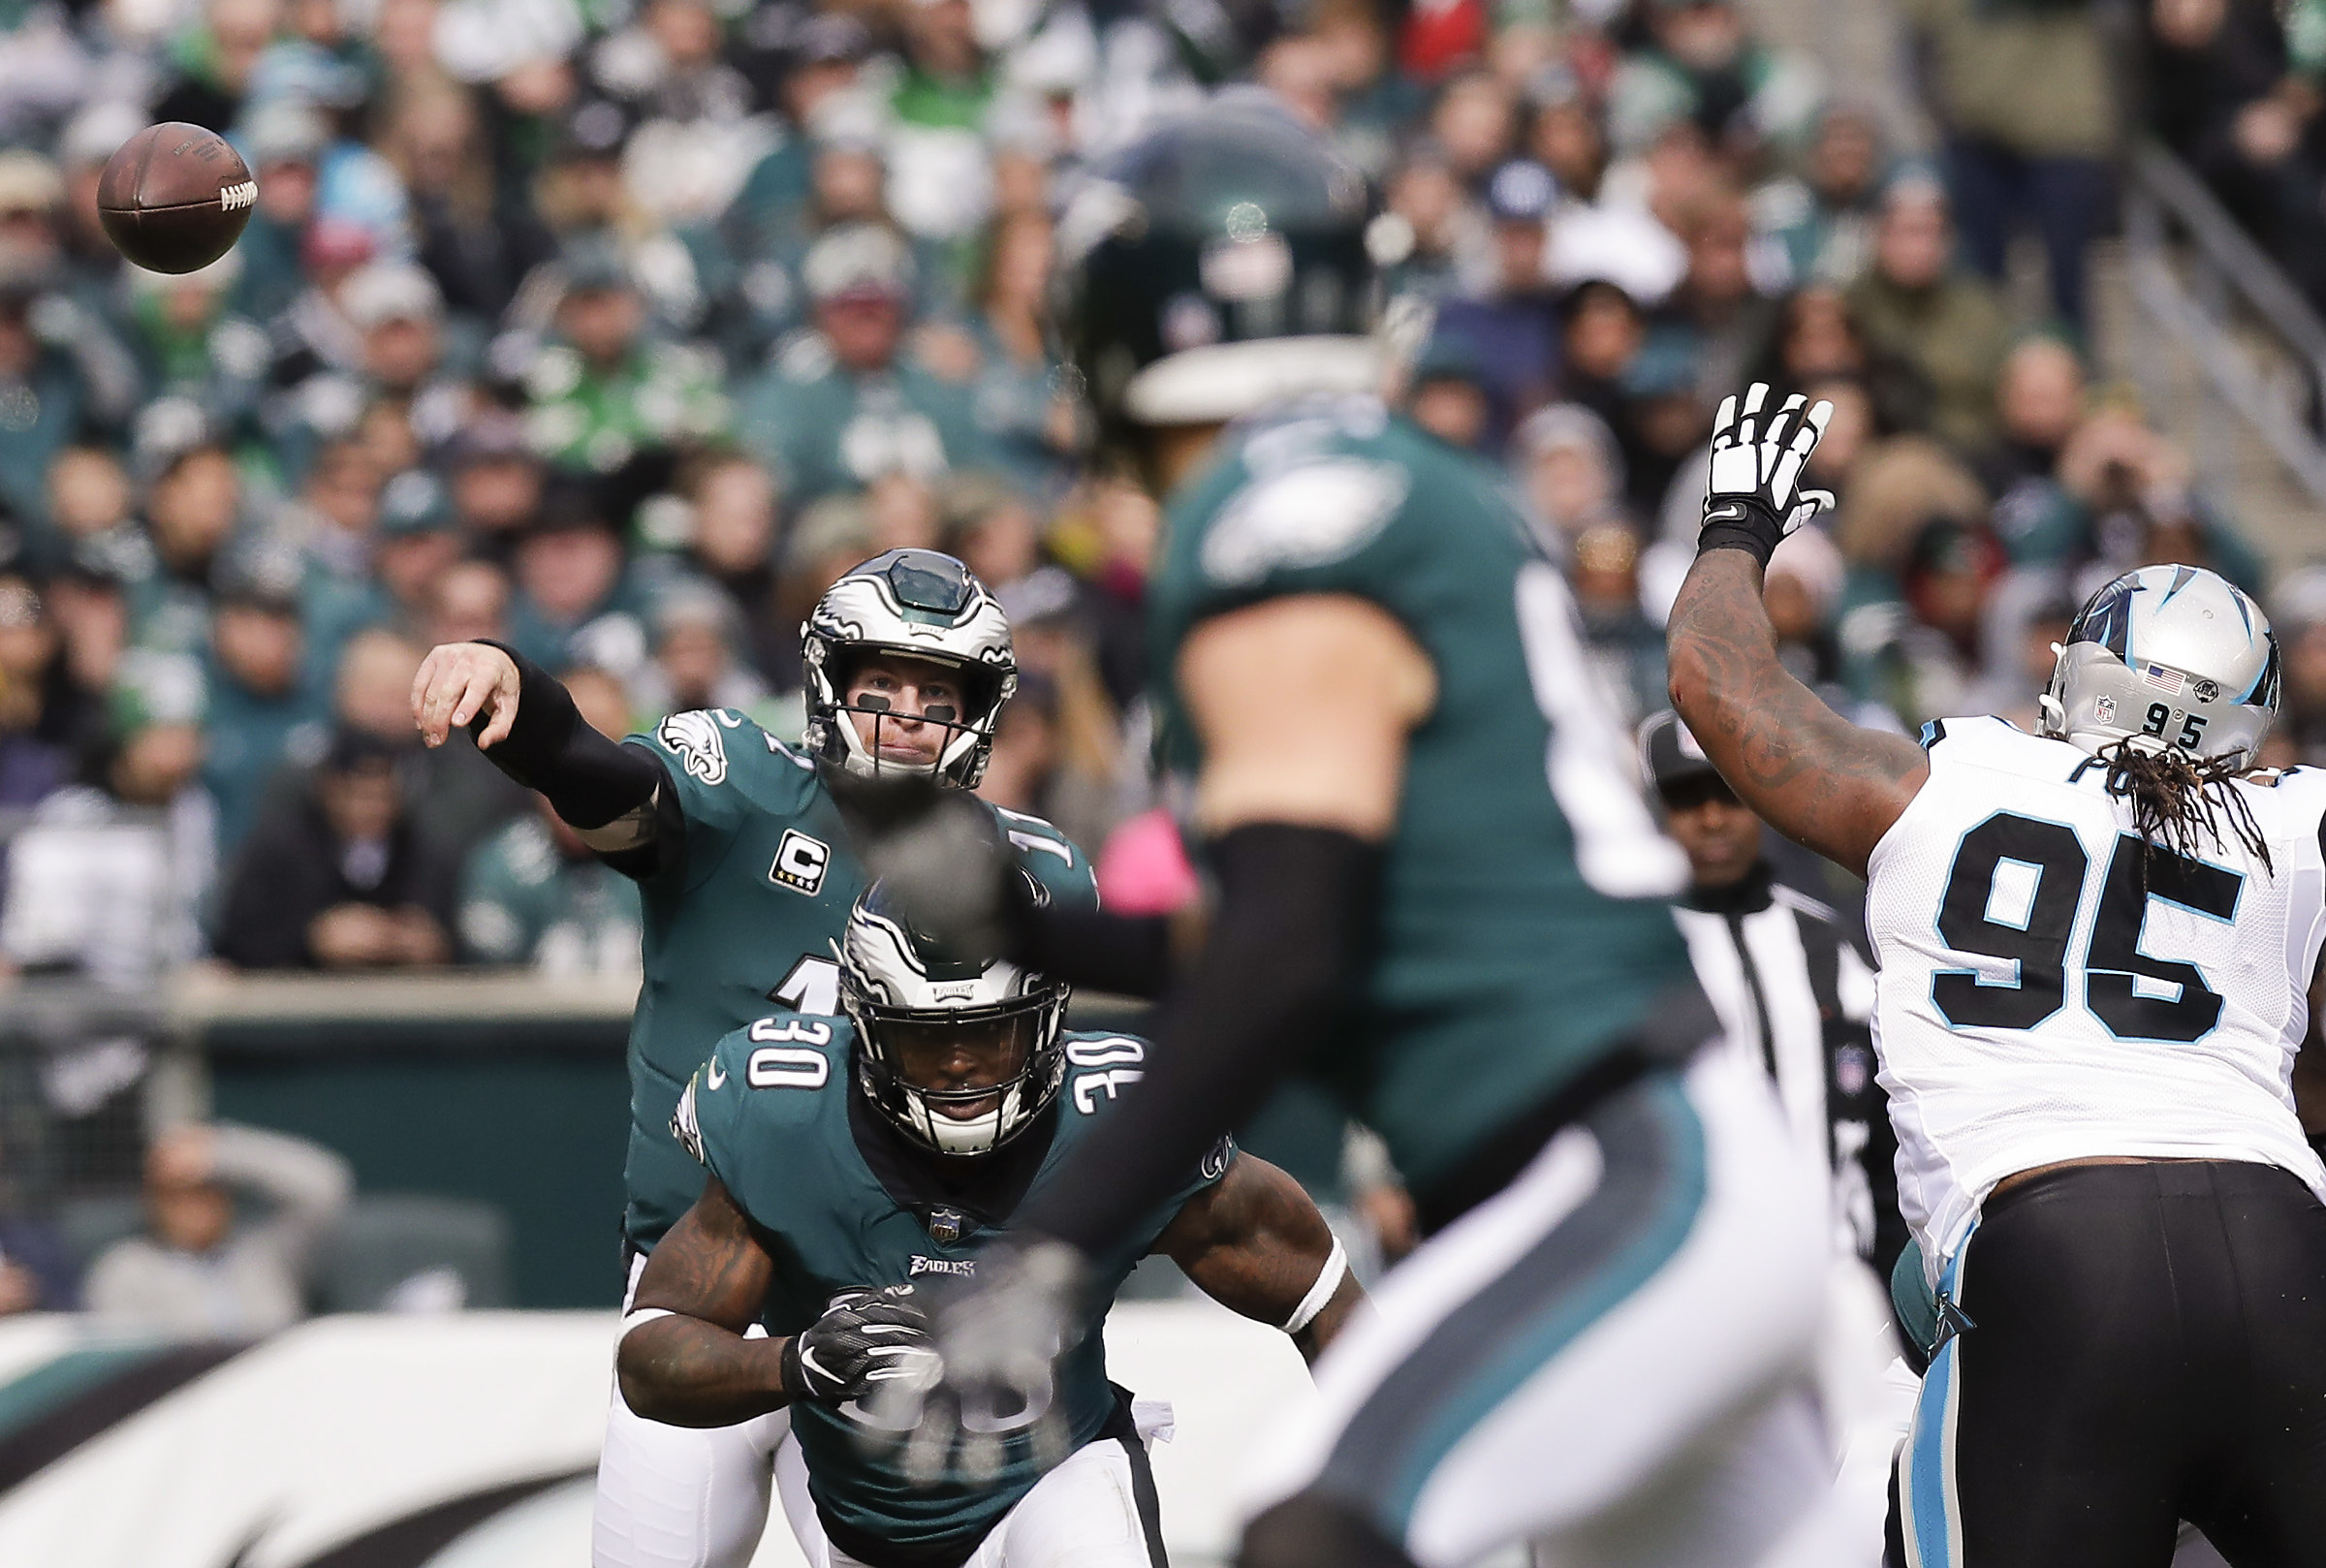 Doug Pederson still has the utmost of confidence in his quarterback at the end of the game.